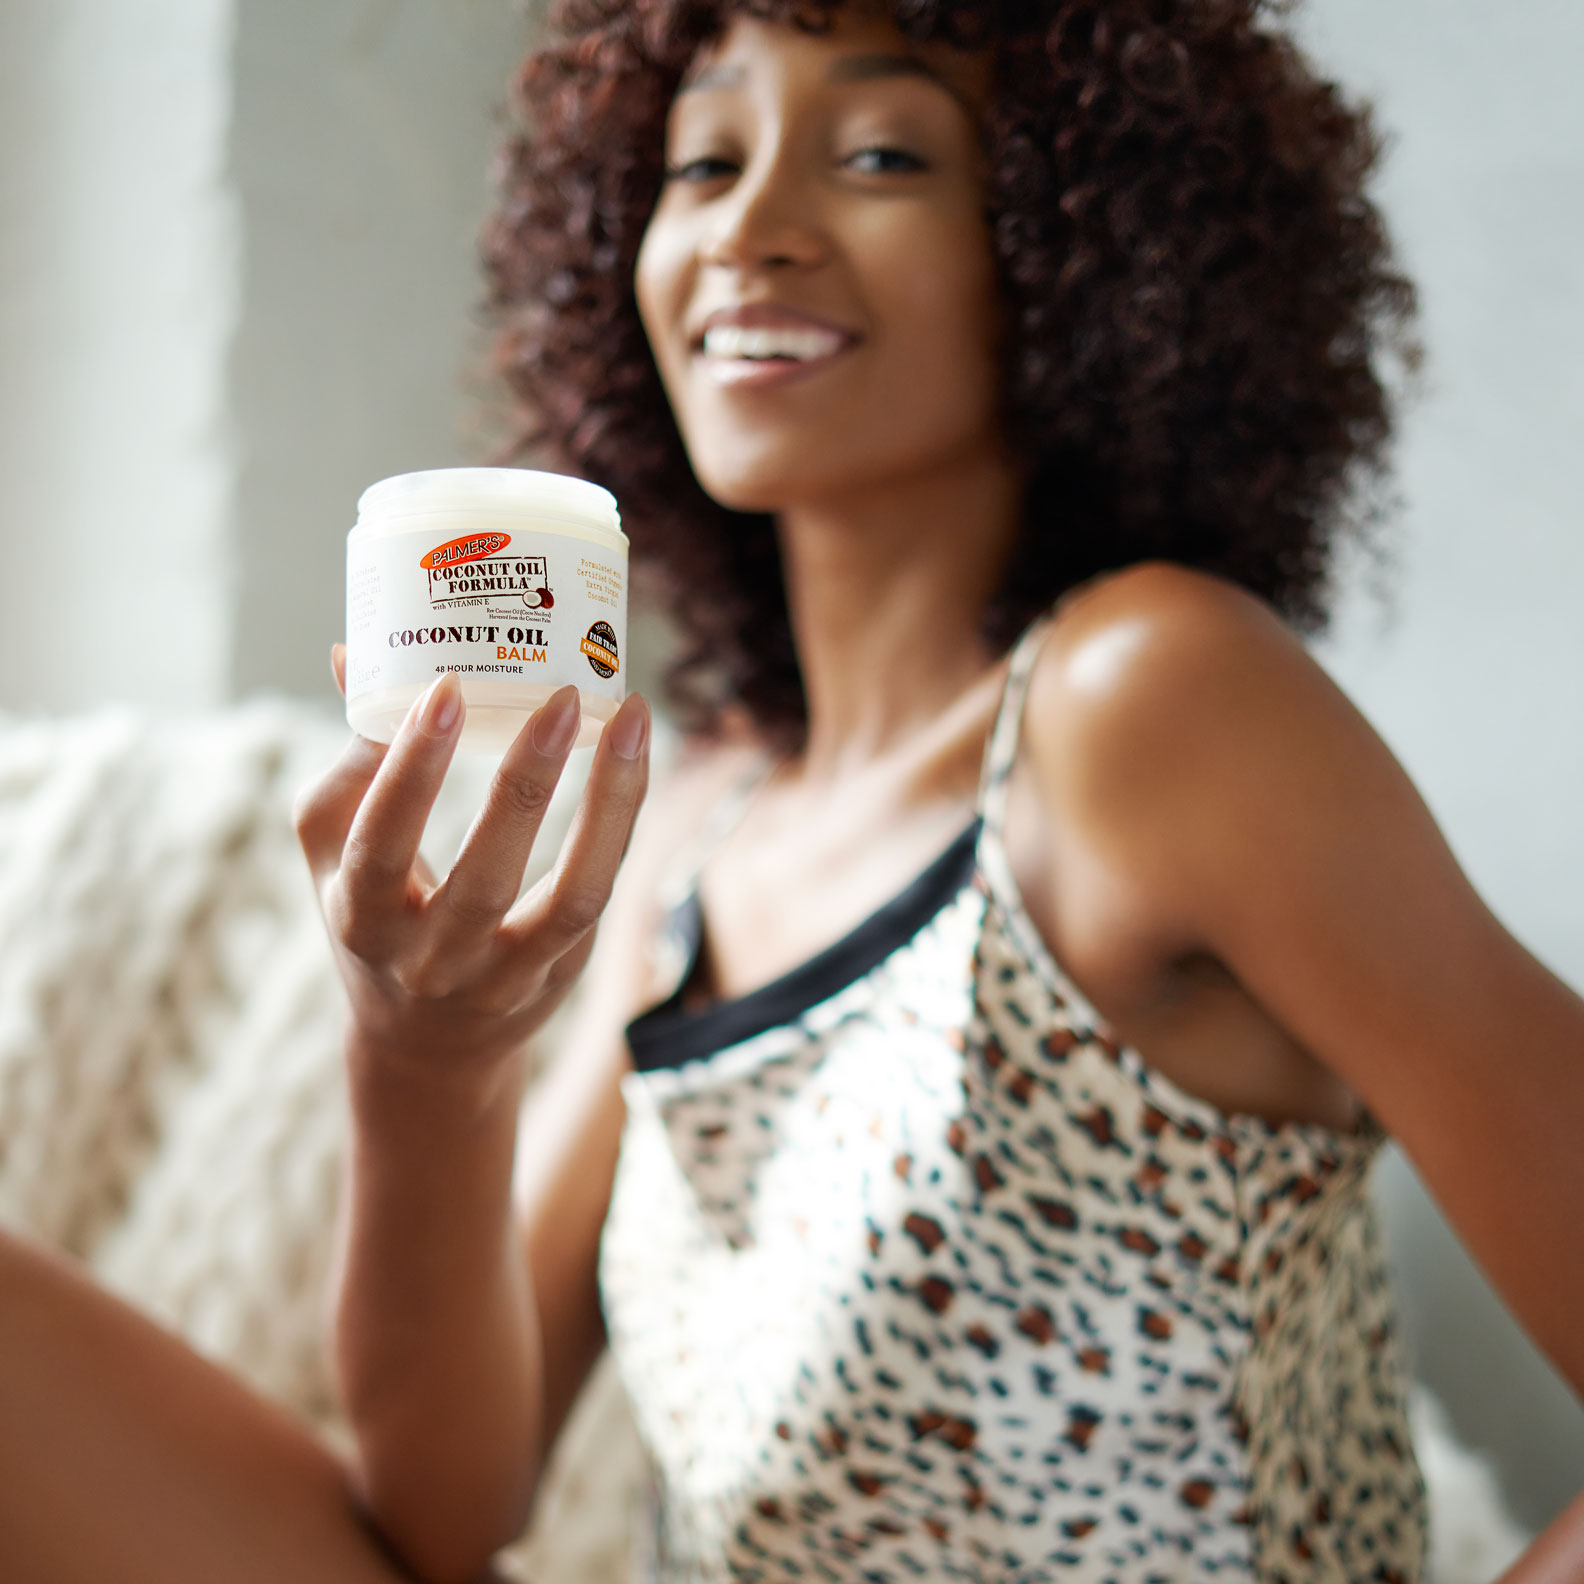 Palmer's Coconut Oil Balm being held in Black woman's hand